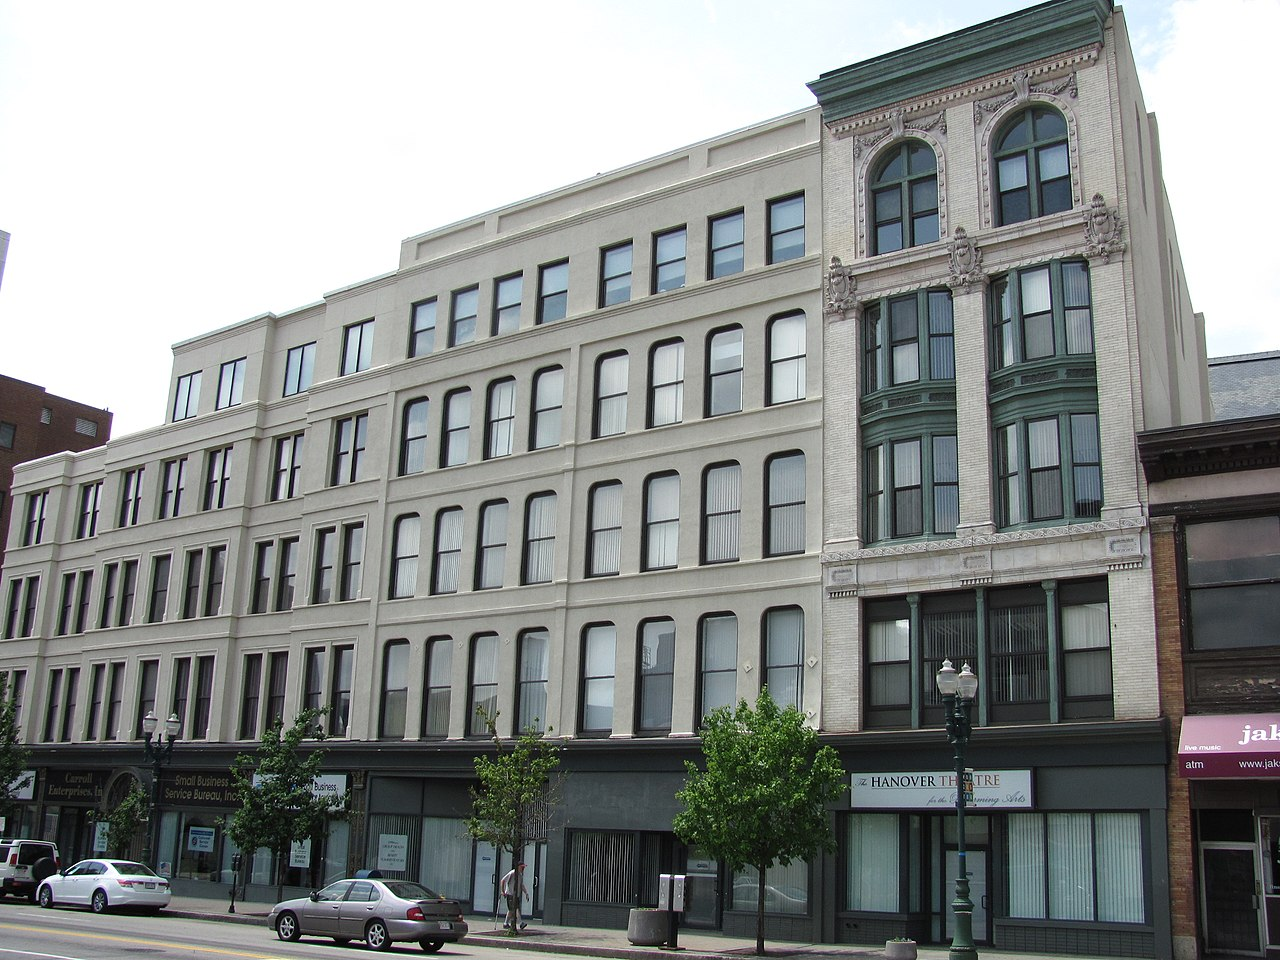 Fileenterprise Building, Worcester Majpg  Wikipedia. Plastic Surgery In Colorado Springs. Consolidate Debt Bad Credit Pictures On Web. Best Industrial Engineering Schools. Computer Hardware Engineer Degree. Water Heater Repair Joliet Il. Online College Psychology Degree. Home Loans Apply Online Acting Courses Online. Moving Companies Springfield Mo